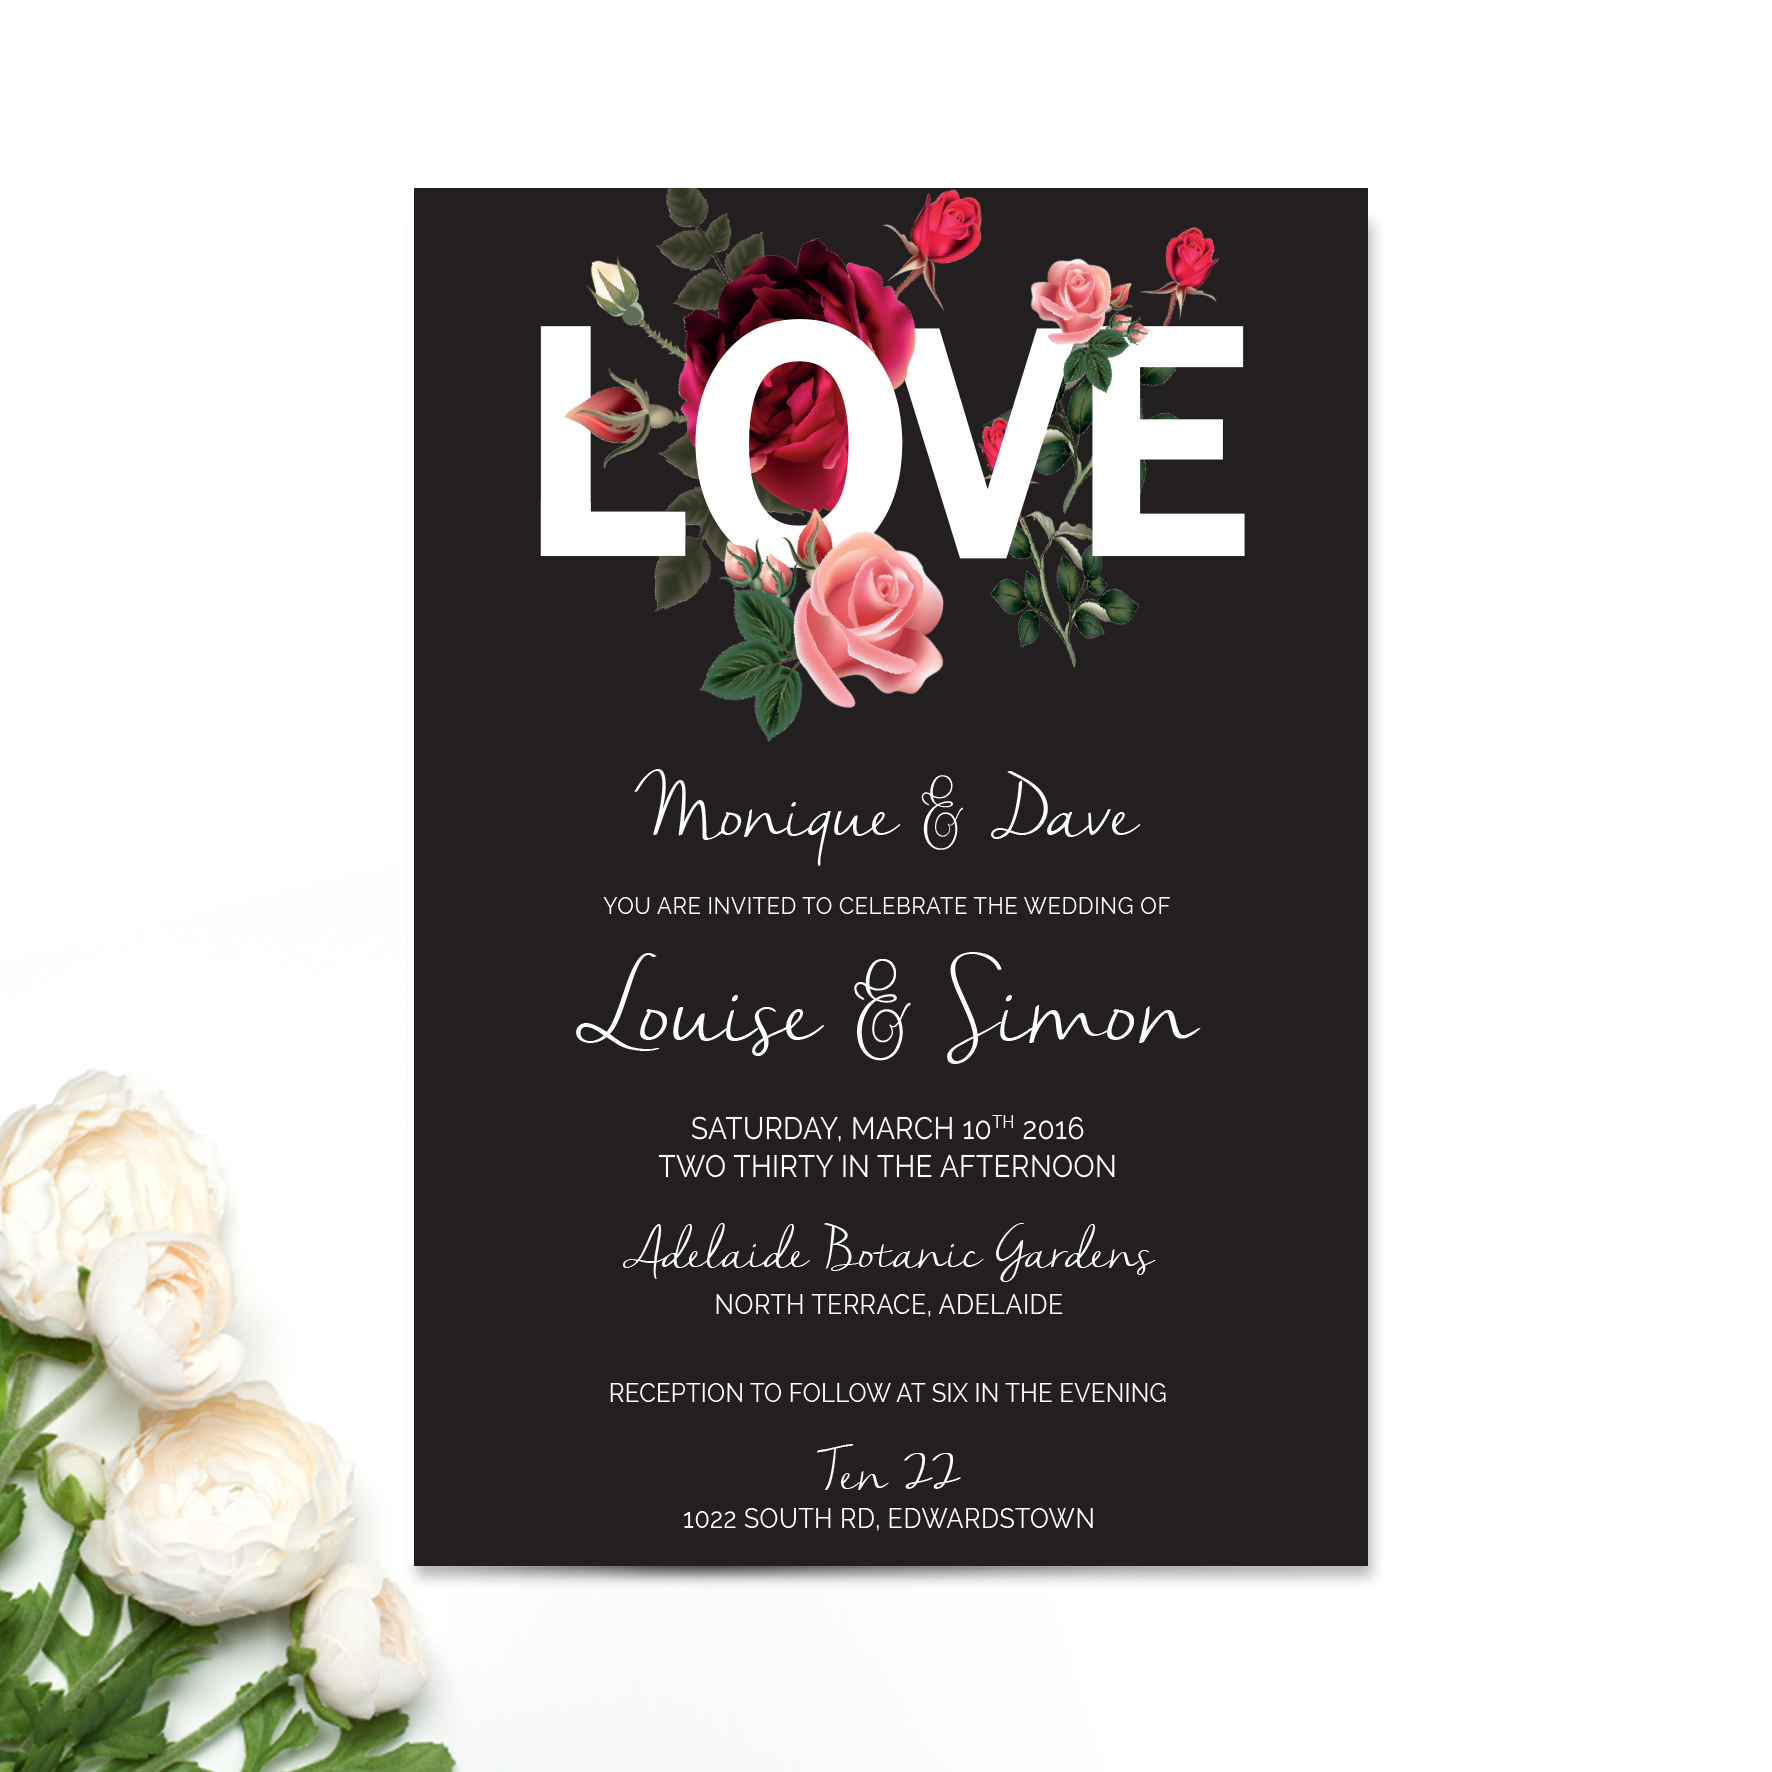 Louise + Simon Wedding Invitation